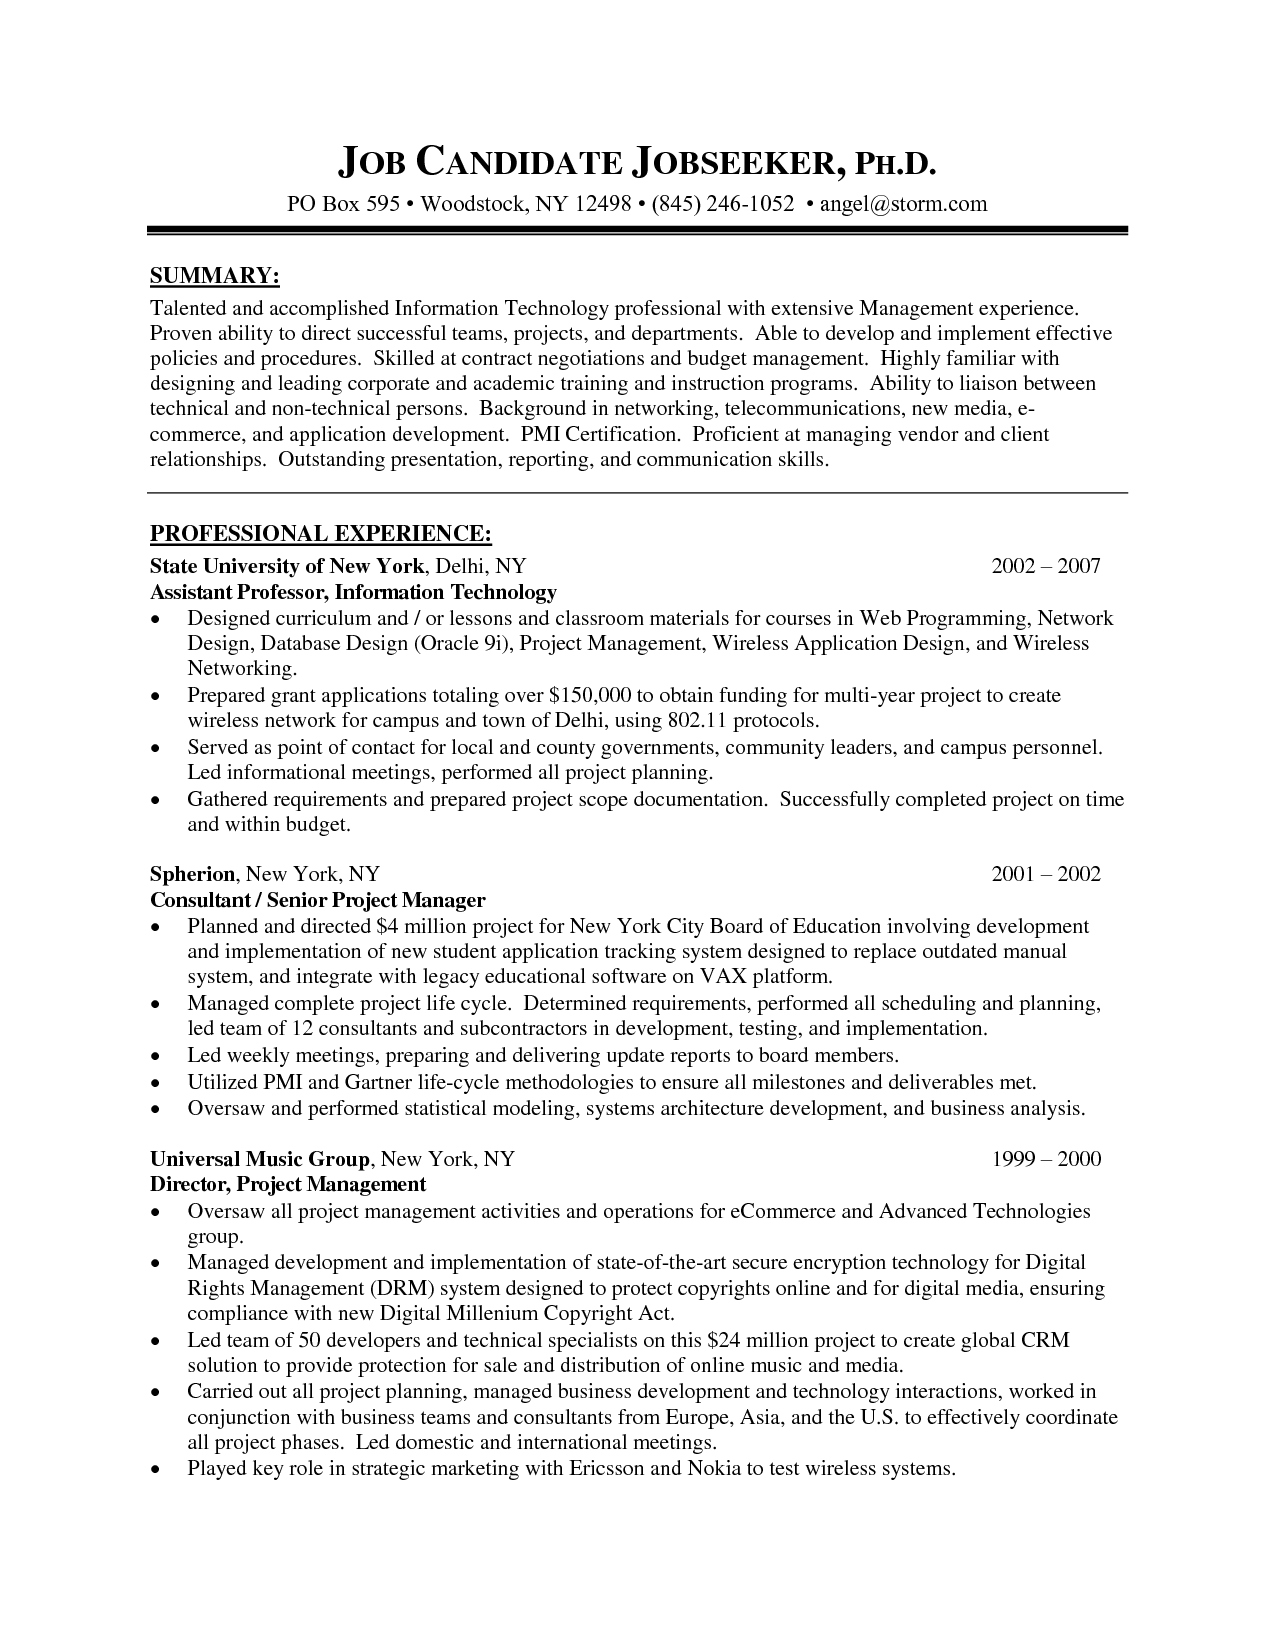 Manager Resume Free Sample Senior Project With Summary Examples Compare  Writing Services Find Local  Project Manager Resume Samples